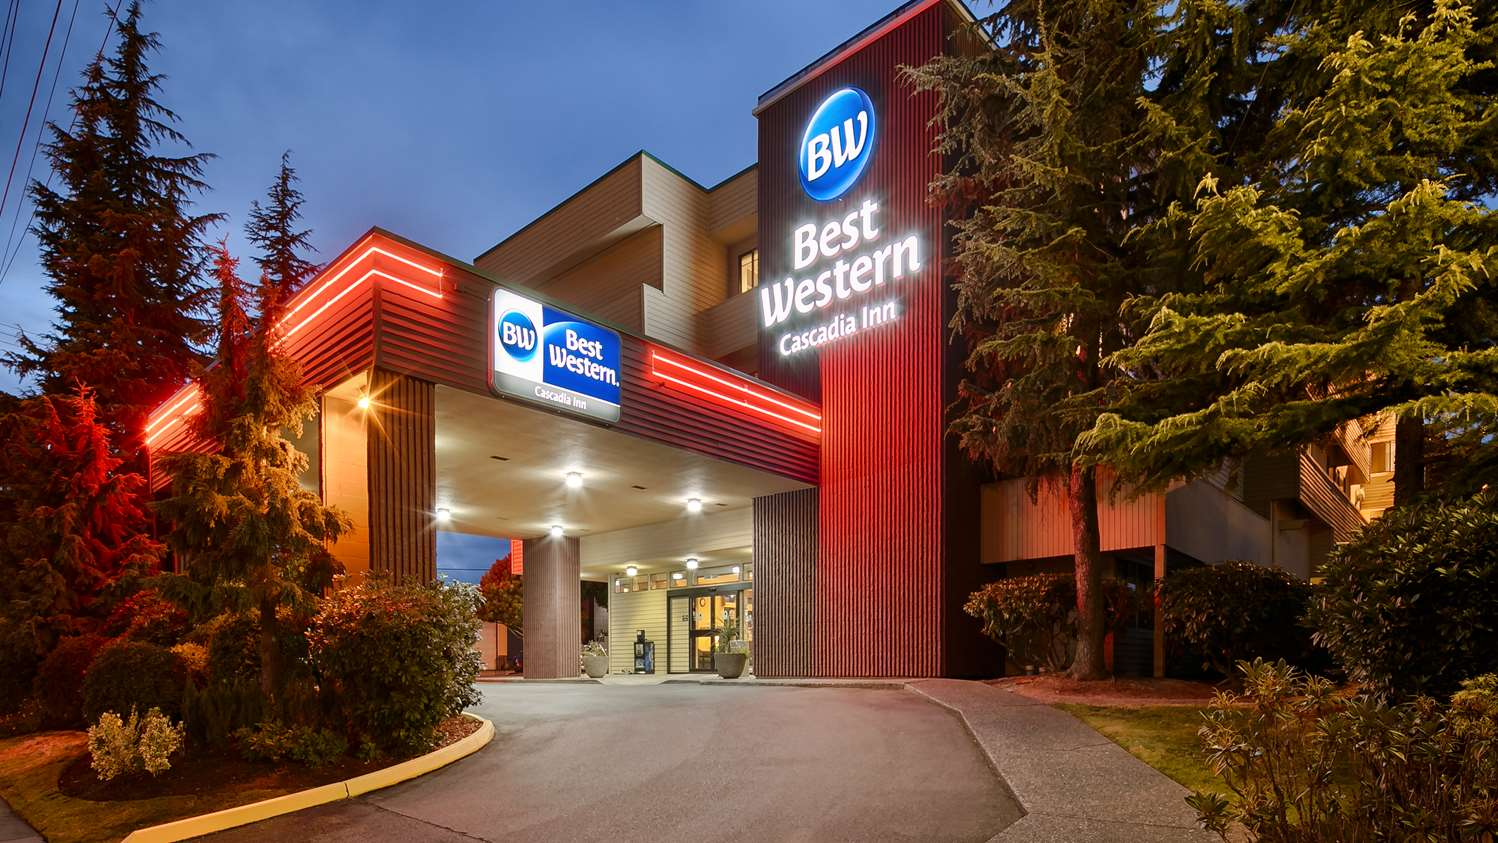 Exterior view - Best Western Cascadia Inn Everett